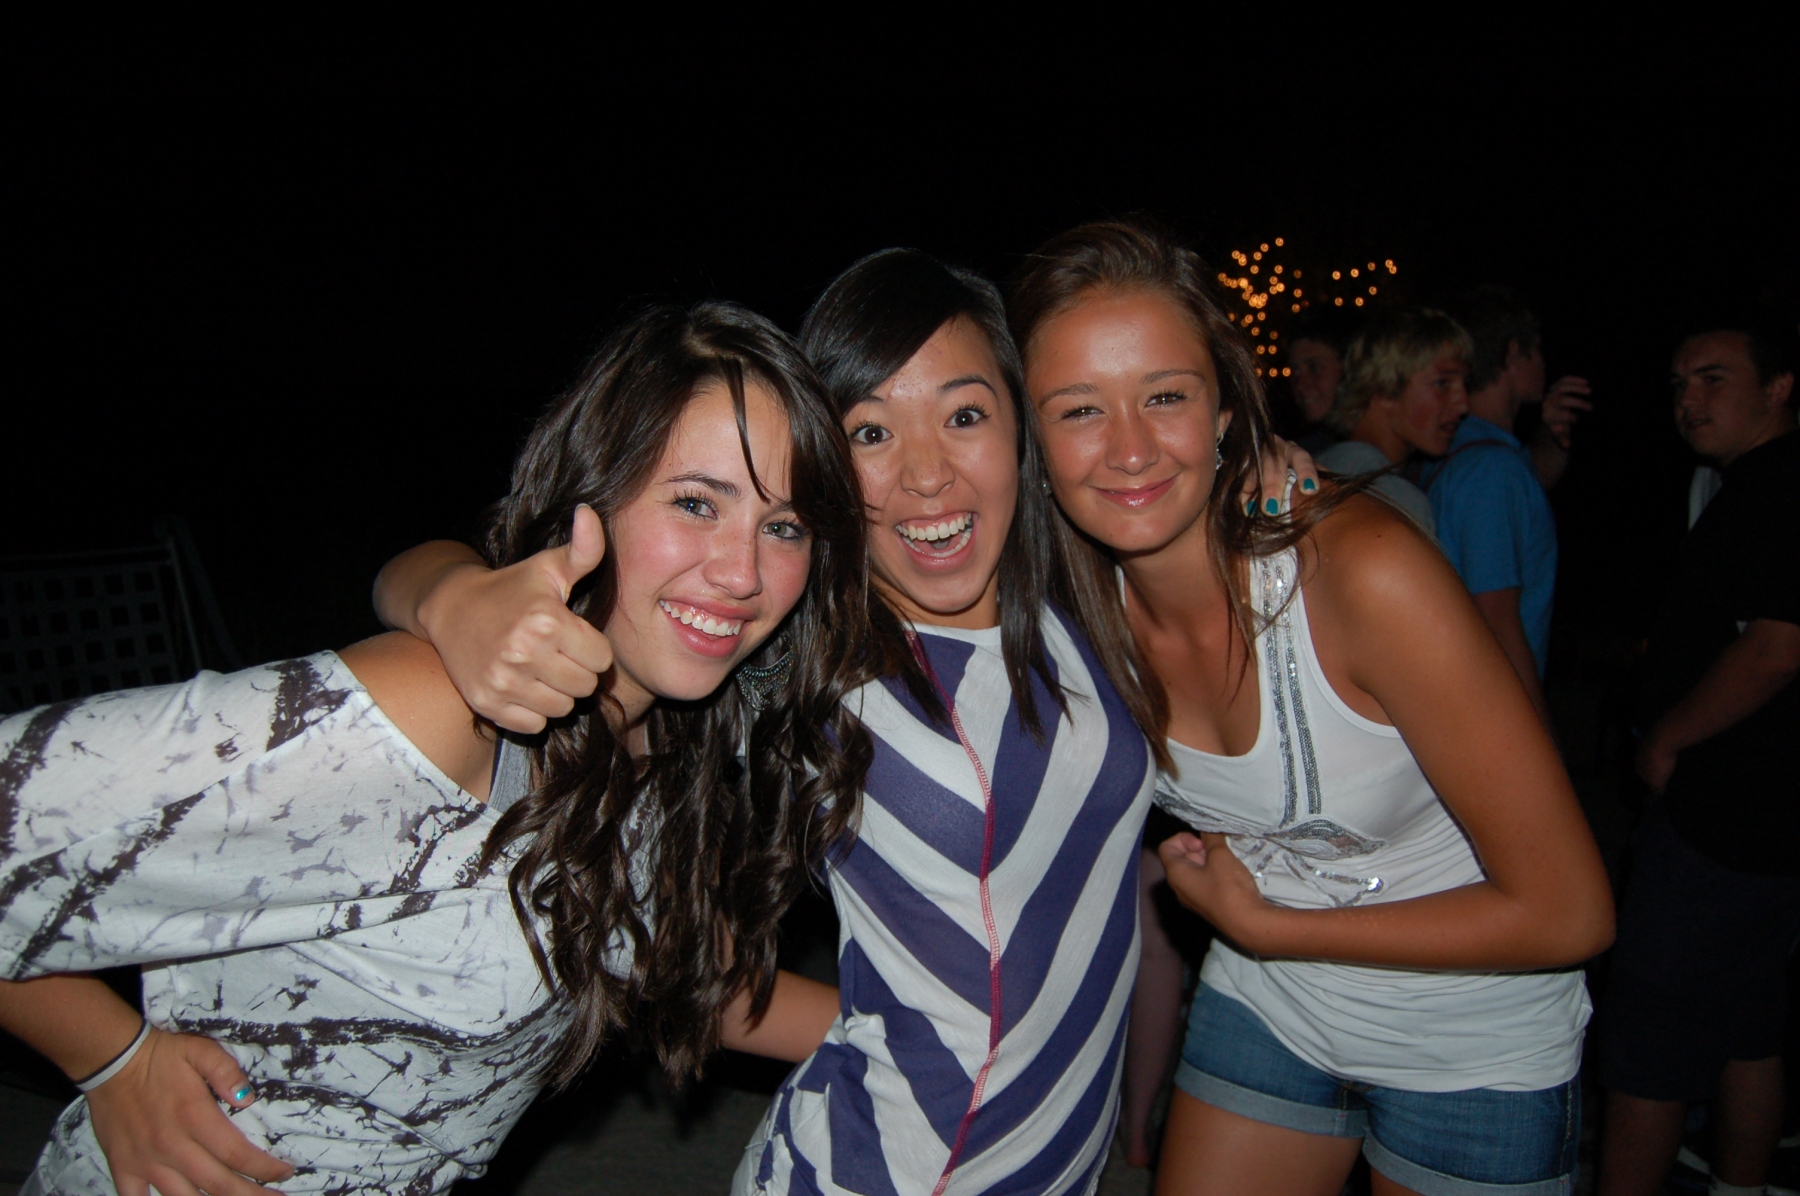 Three Girls having a great time at this fun and exciting pool party with Denver Colorado's Best Pool Party DJ, DJ Emir of Denver's Best DJs Asian Girl, White Girls have fun